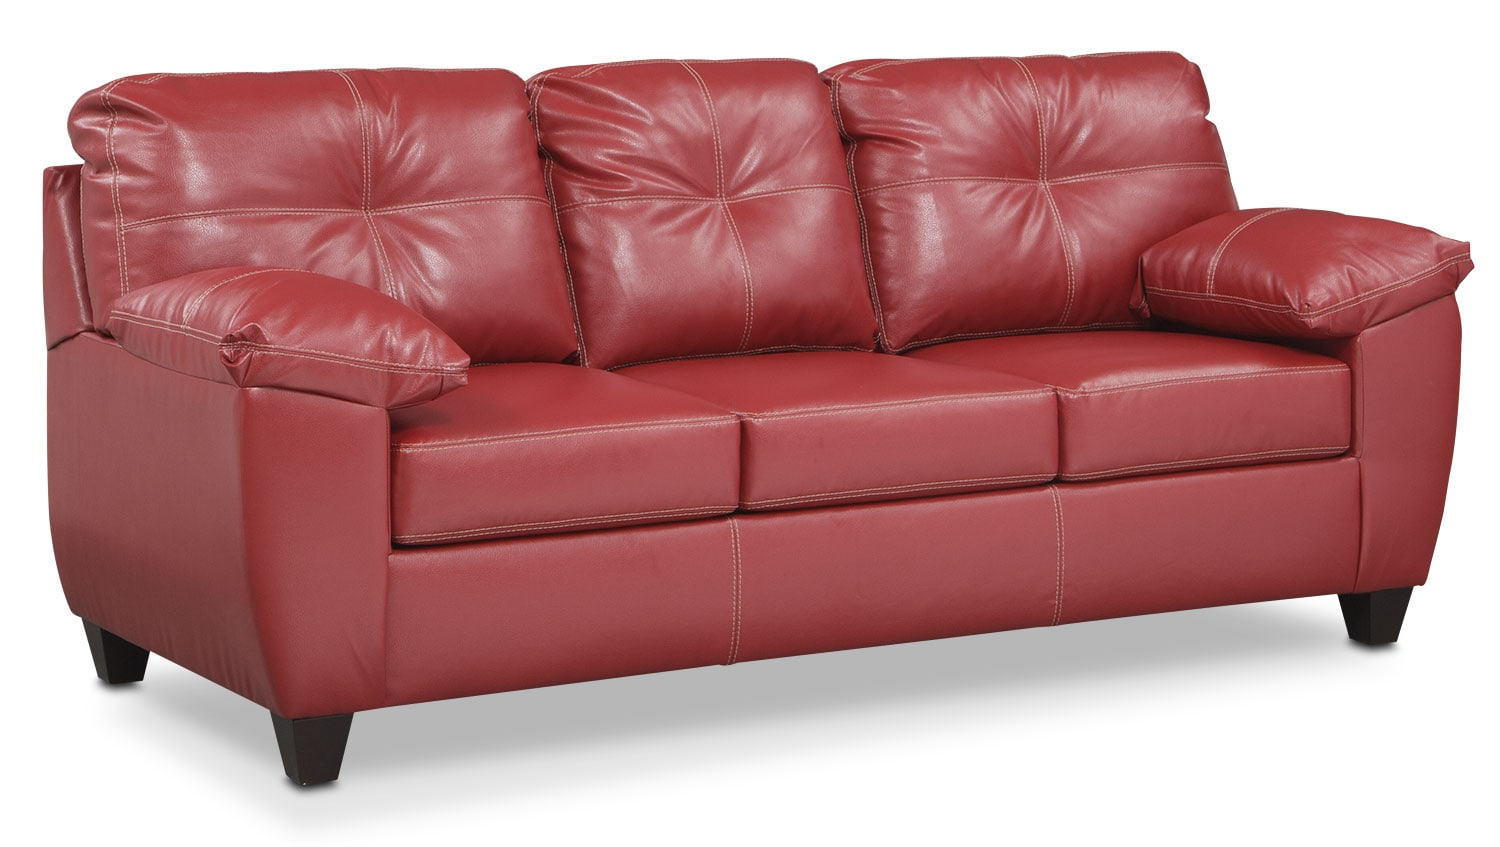 Living Room Furniture - Rialto Sofa - Cardinal